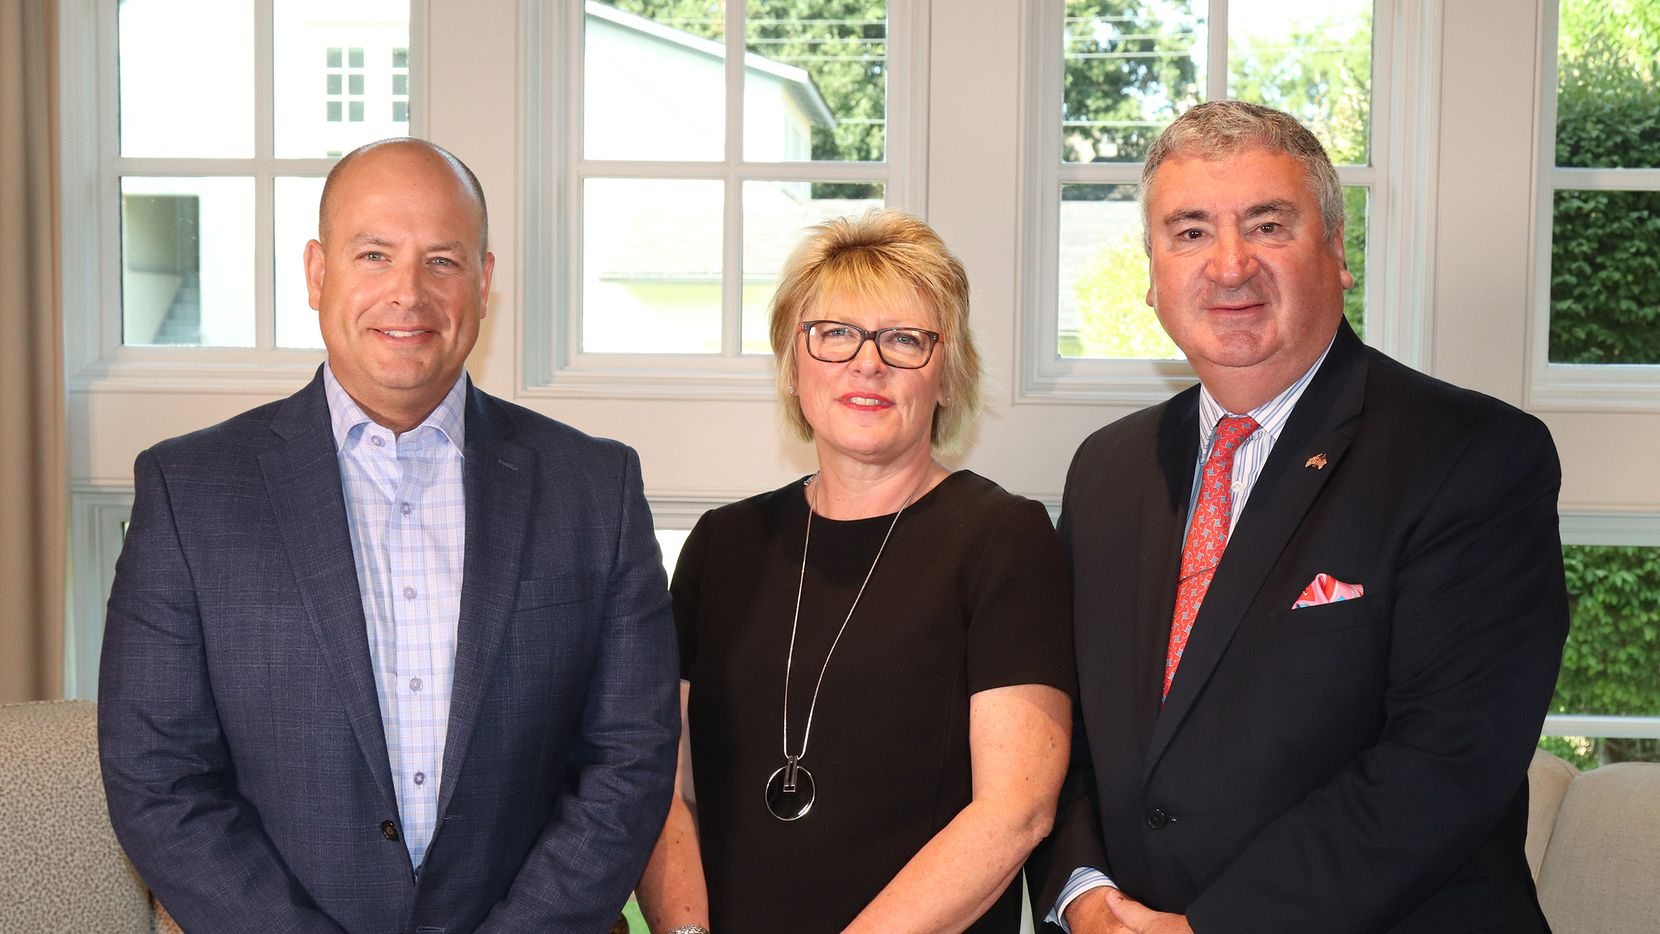 From left, Ebby Halliday Companies president and CEO Chris Kelly and Mayfair International Realty's international director Annette Reeve and managing director Nick Churton.